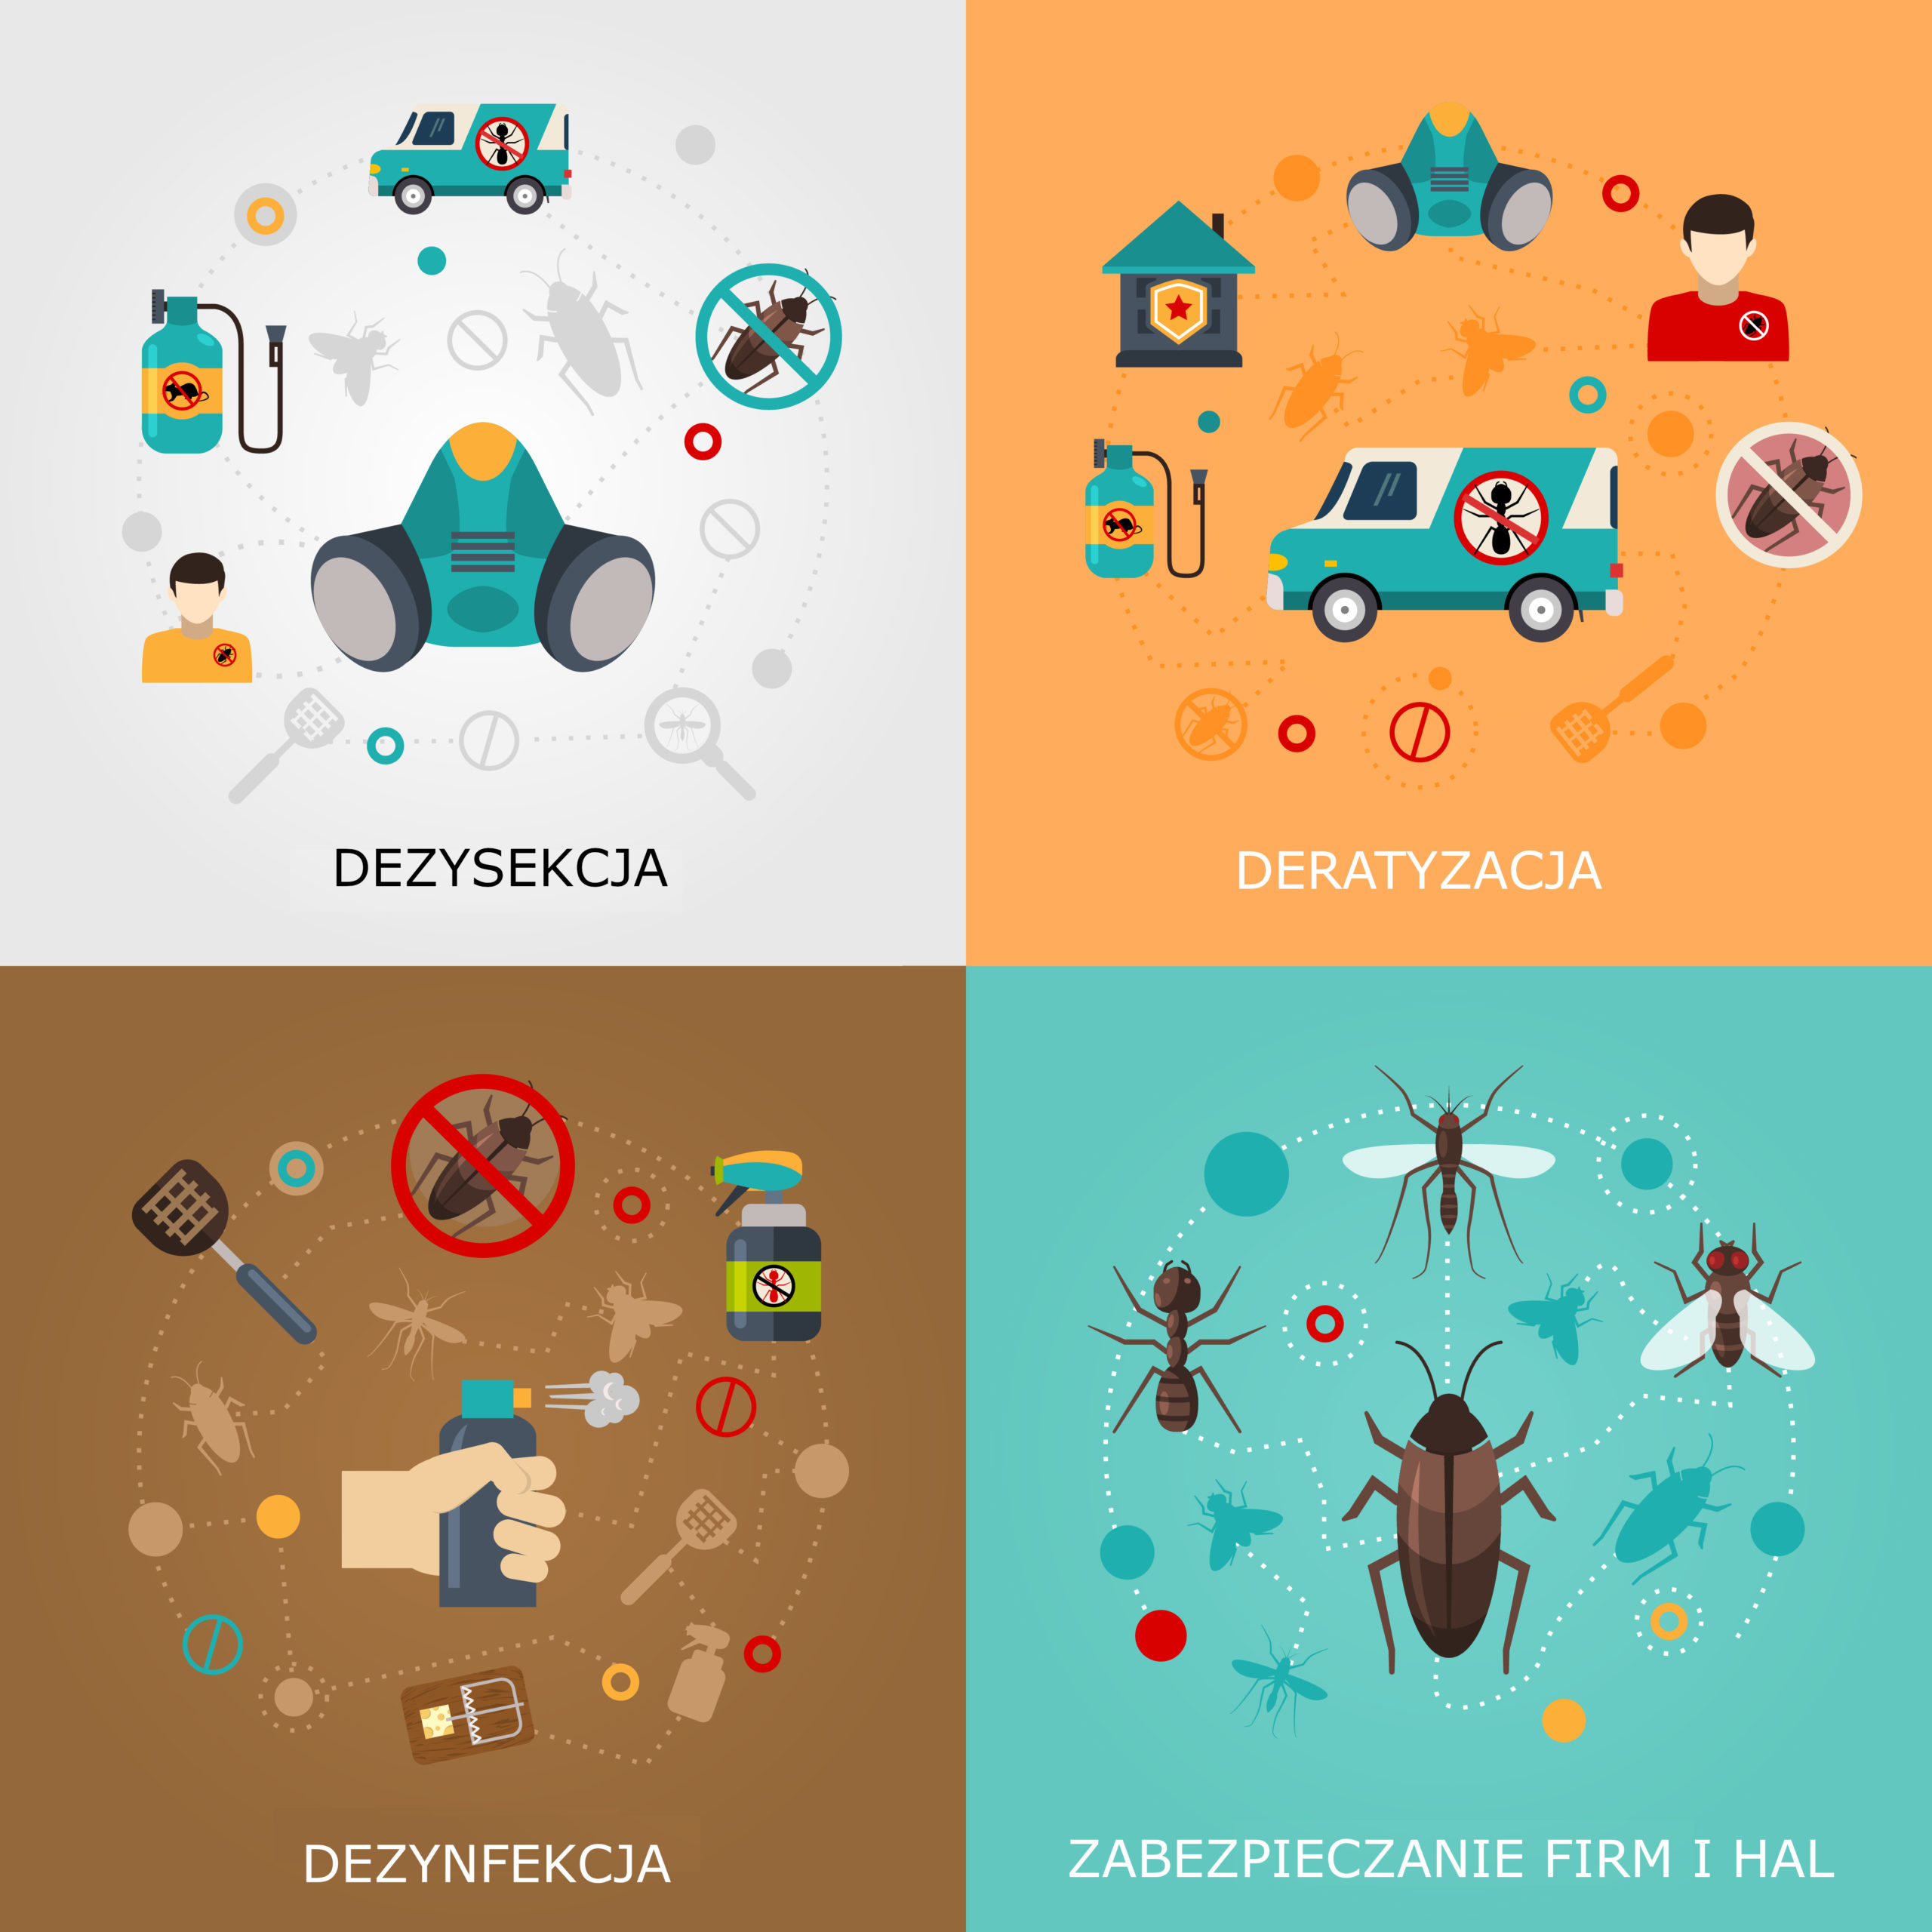 Home pest control services 4 flat icons square composition for detecting exterminating insects and rodents abstract isolated vector illustration